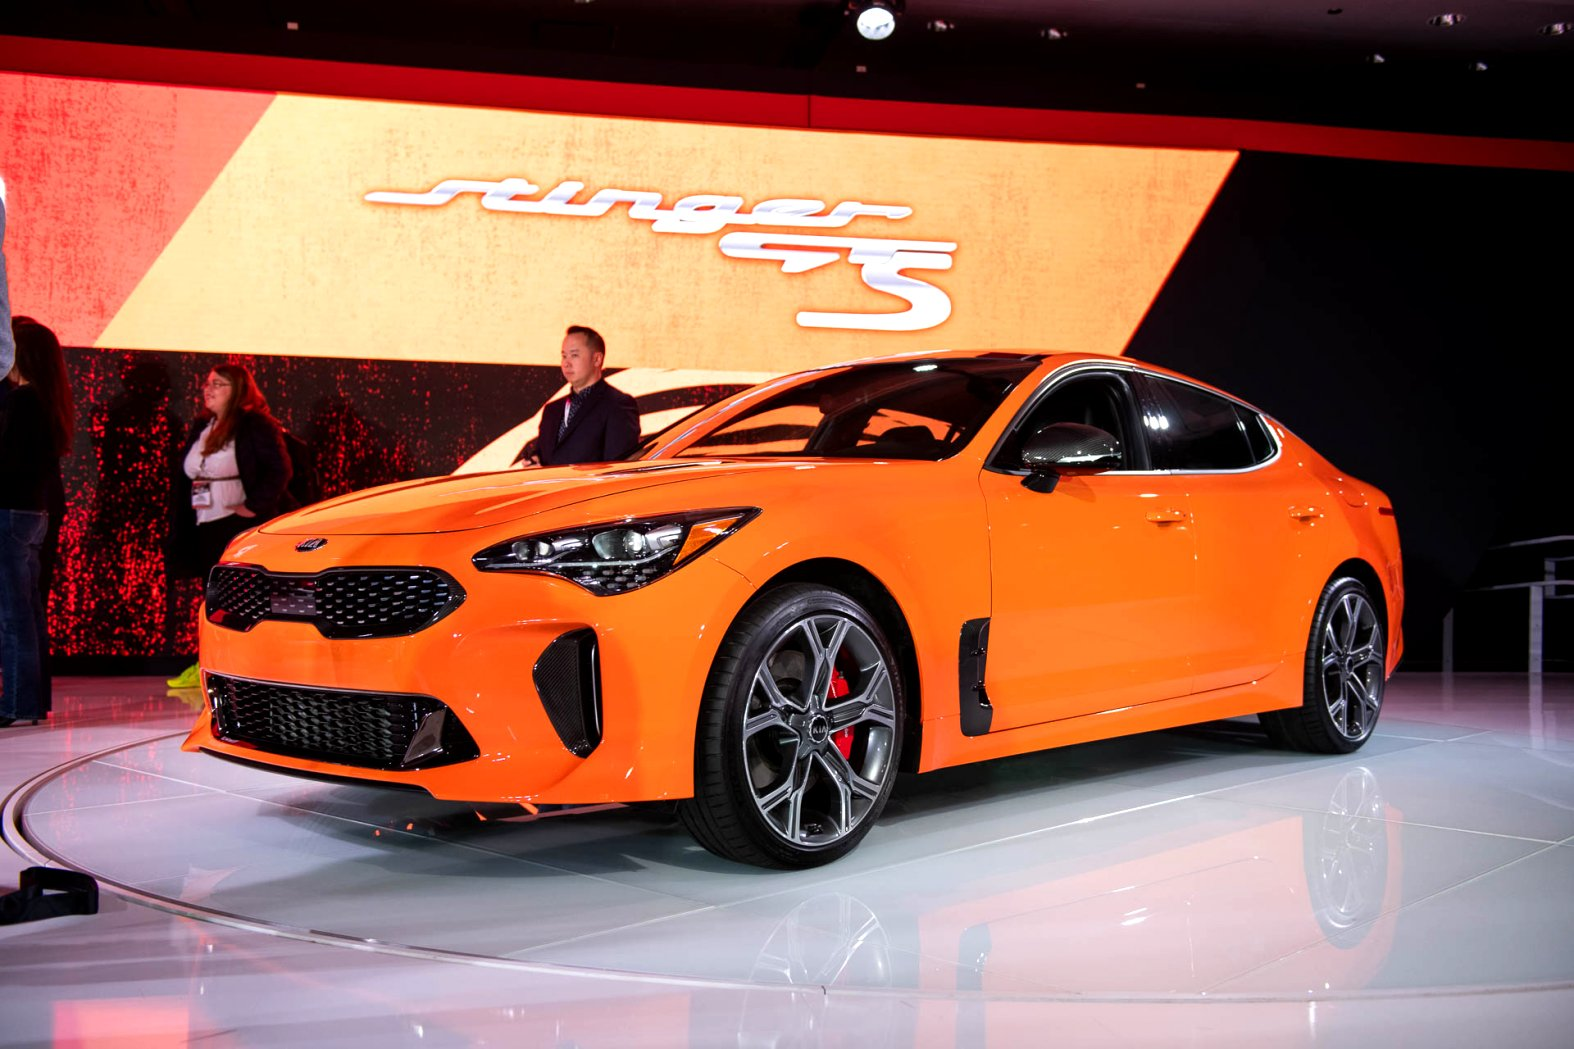 2020 kia cars Exterior and Interior